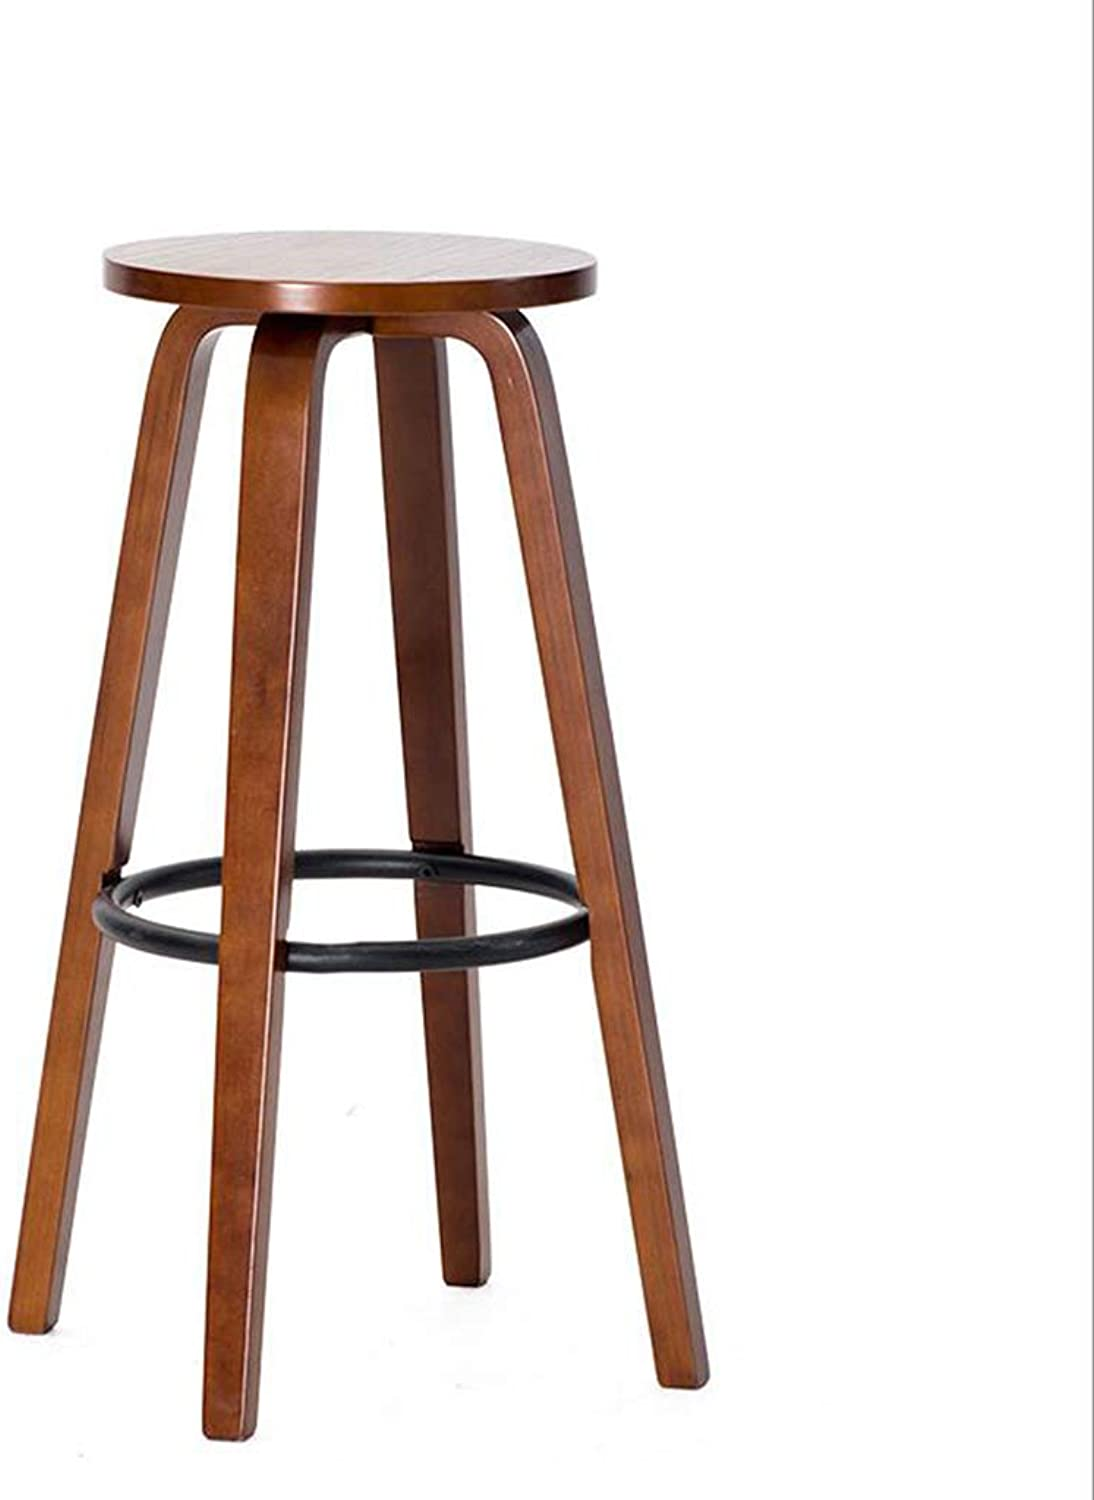 Bar Stool Bar Chair Modern Minimalist Personality Bar Chair Creative Solid Wood Round Chair Home Living Room Bar Stool (color   Brown)